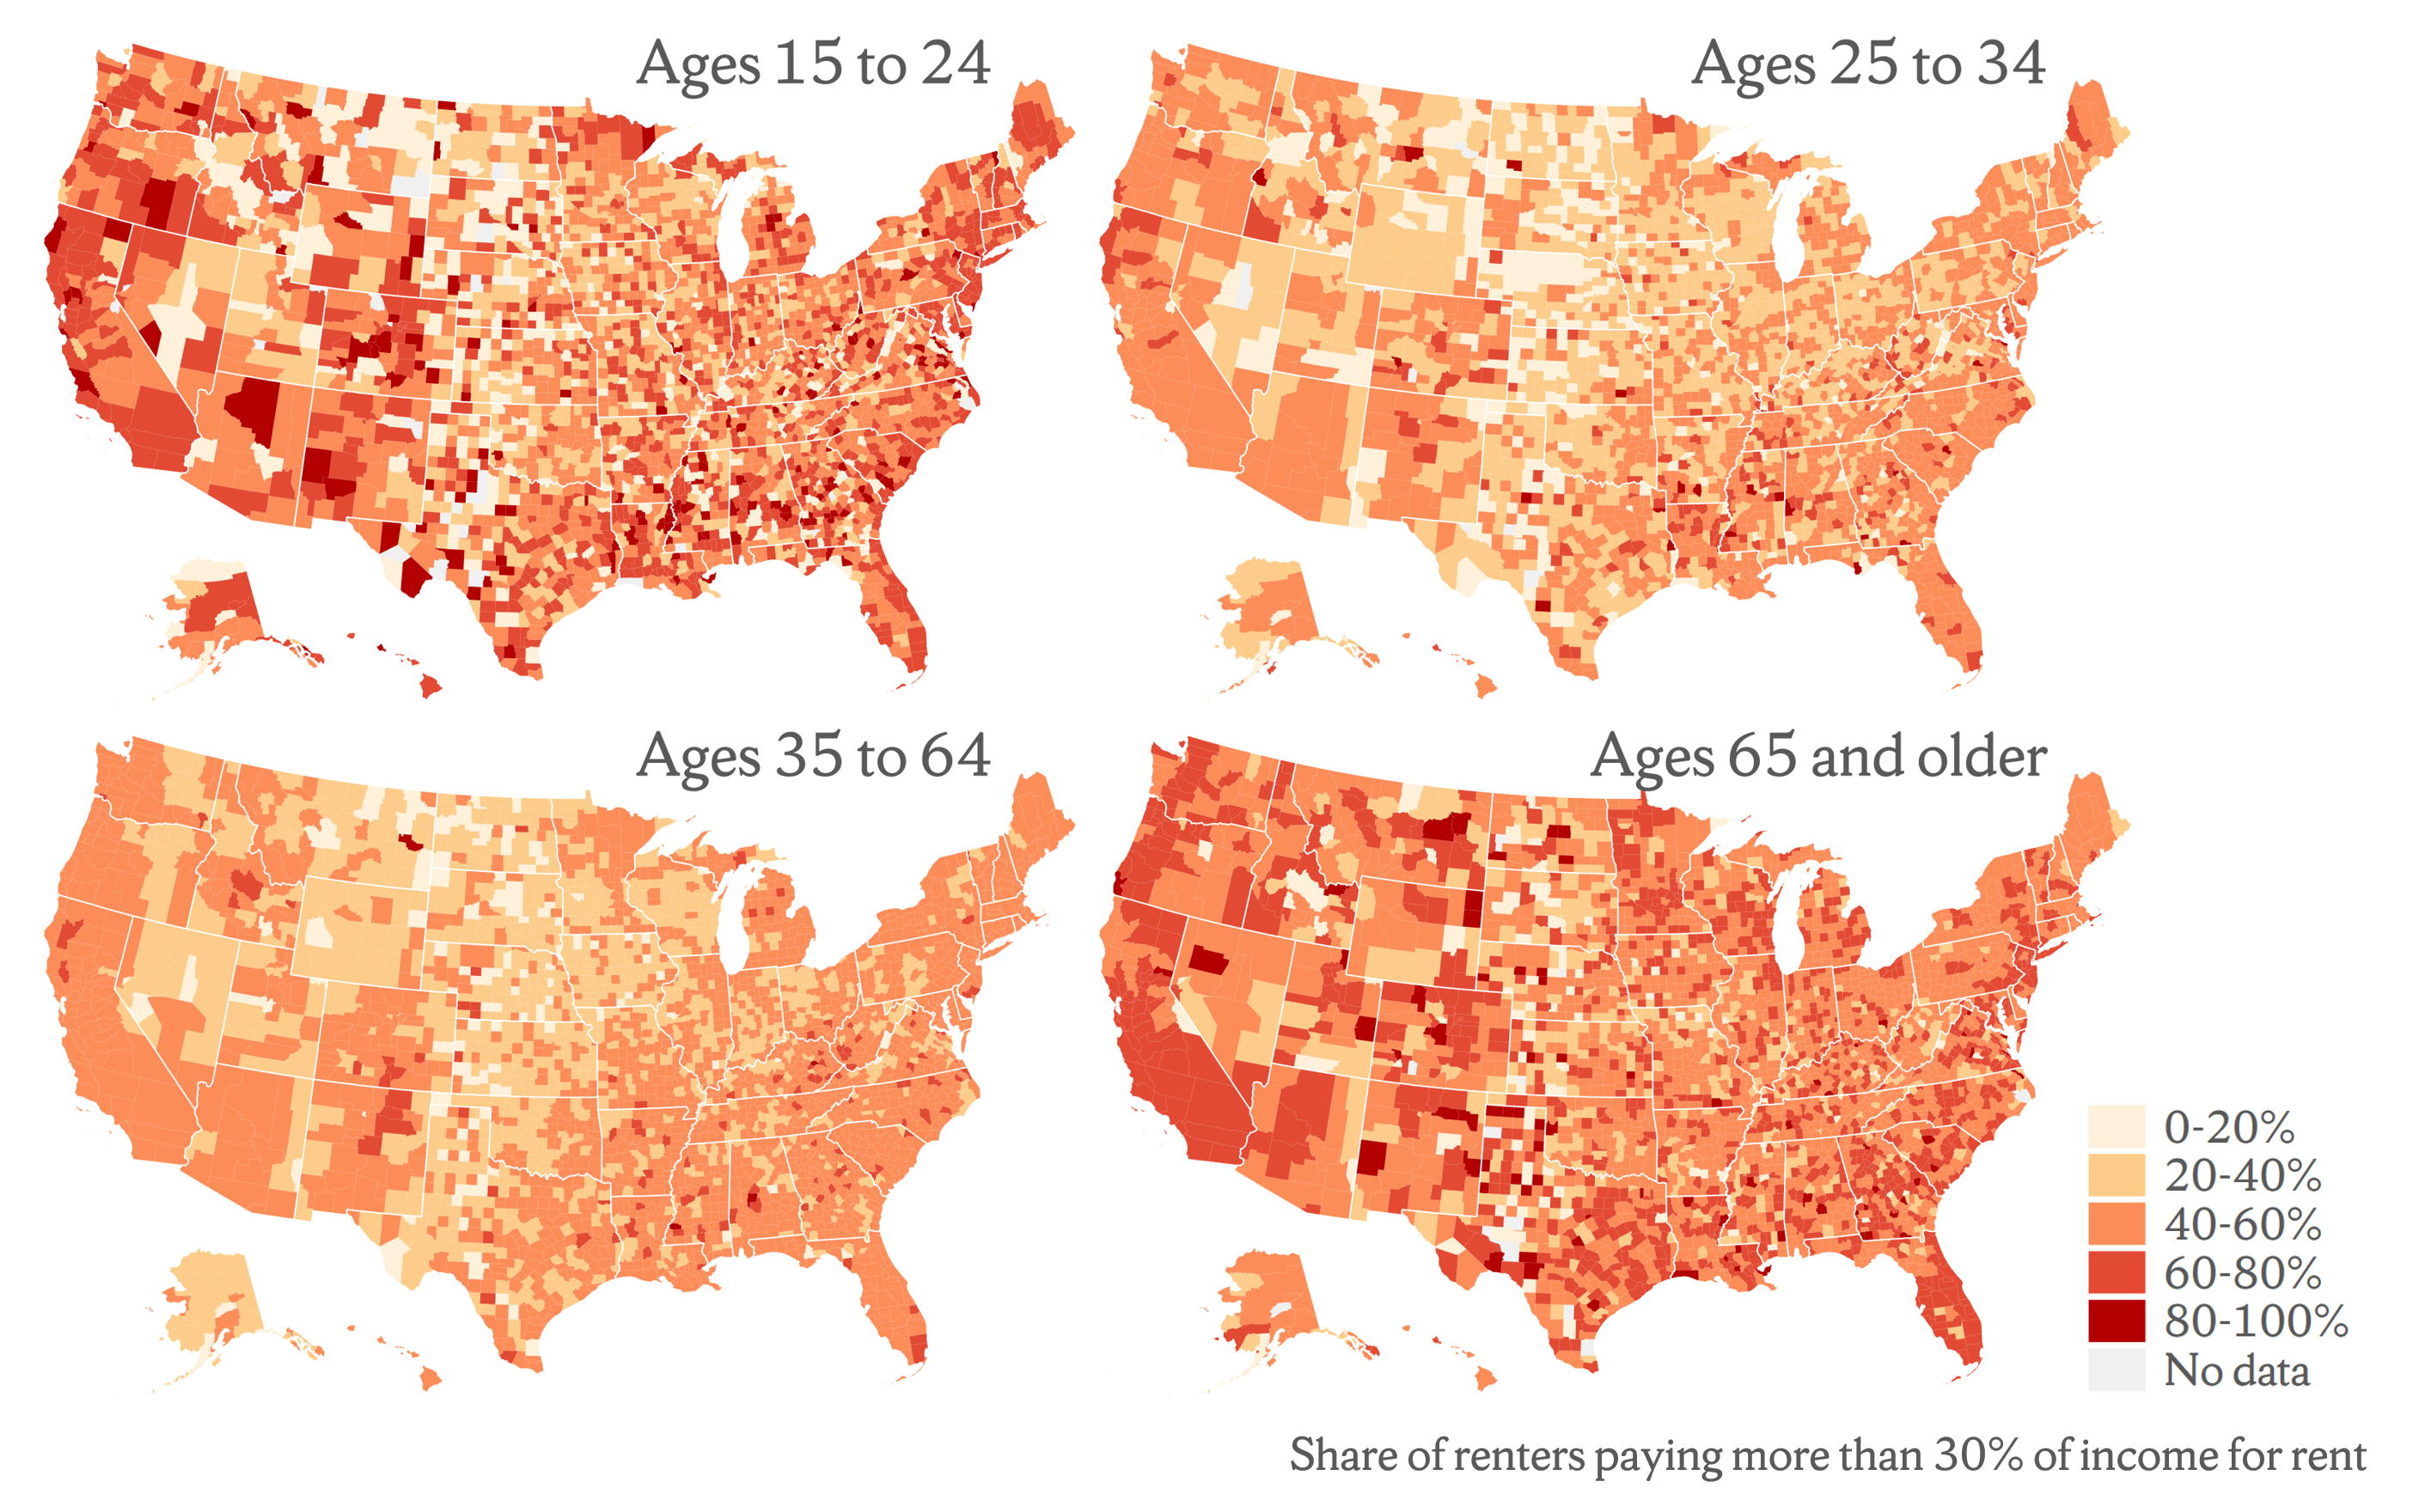 Figure 1. Large Shares of Young and Older Adult Renters Spend More than 30% of their Income on Rent